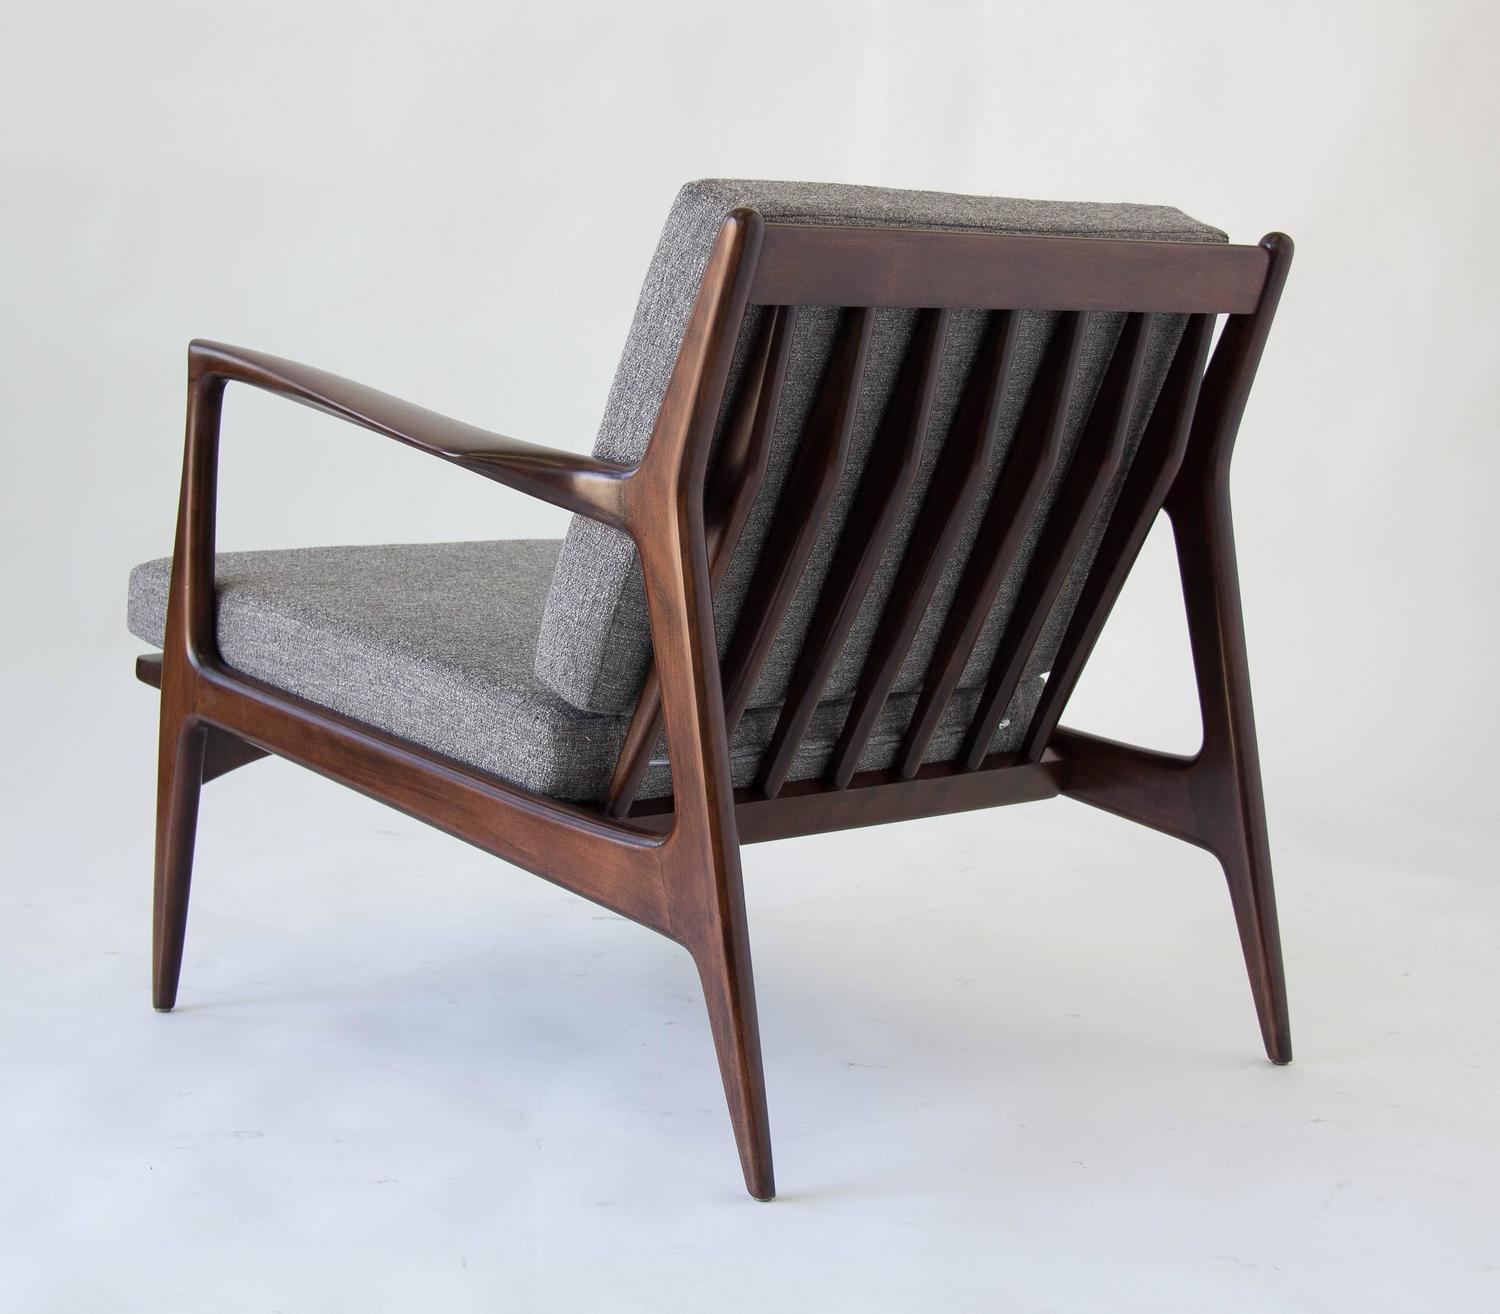 Lounge chair by ib kofod larsen for selig for sale at 1stdibs - Selig z chair for sale ...